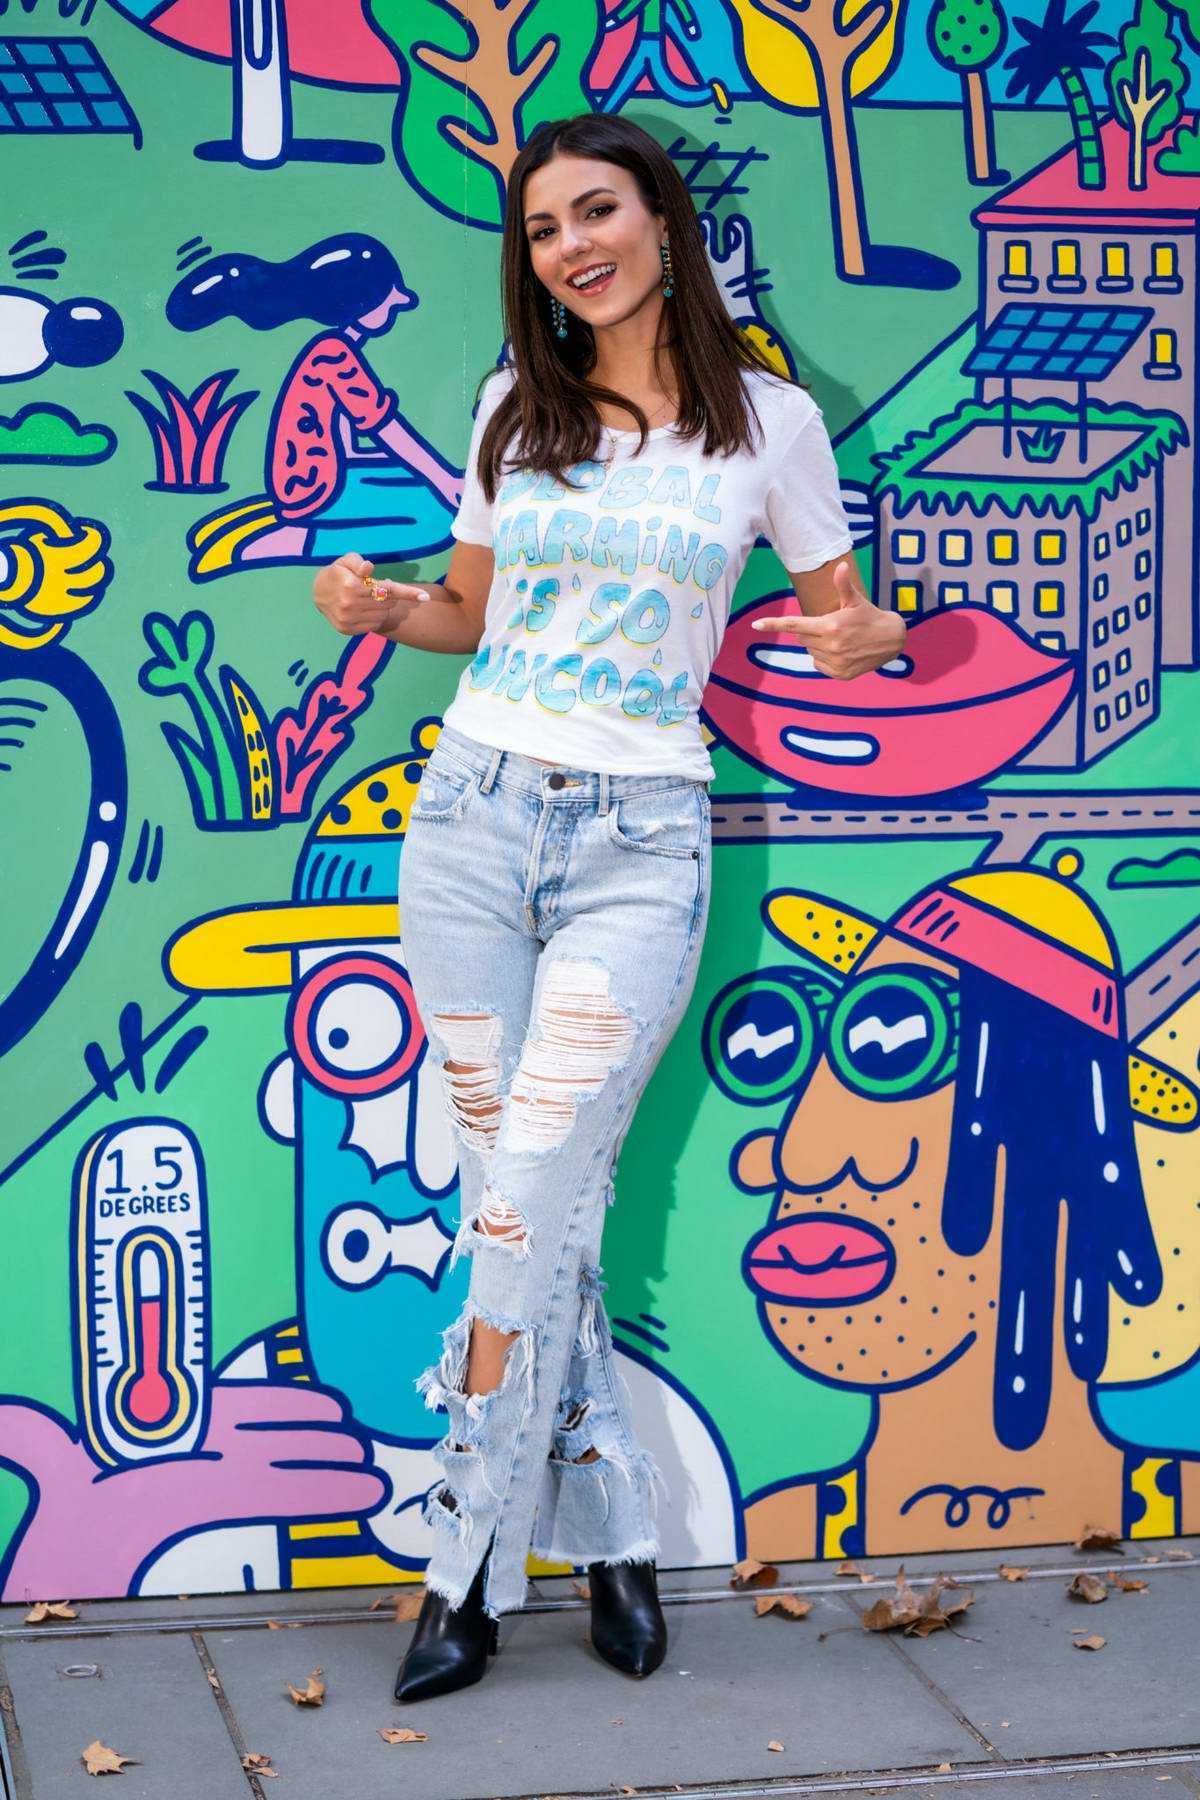 Victoria Justice visits the 'Pledge For Planet' mural at Bryant Park in New York City